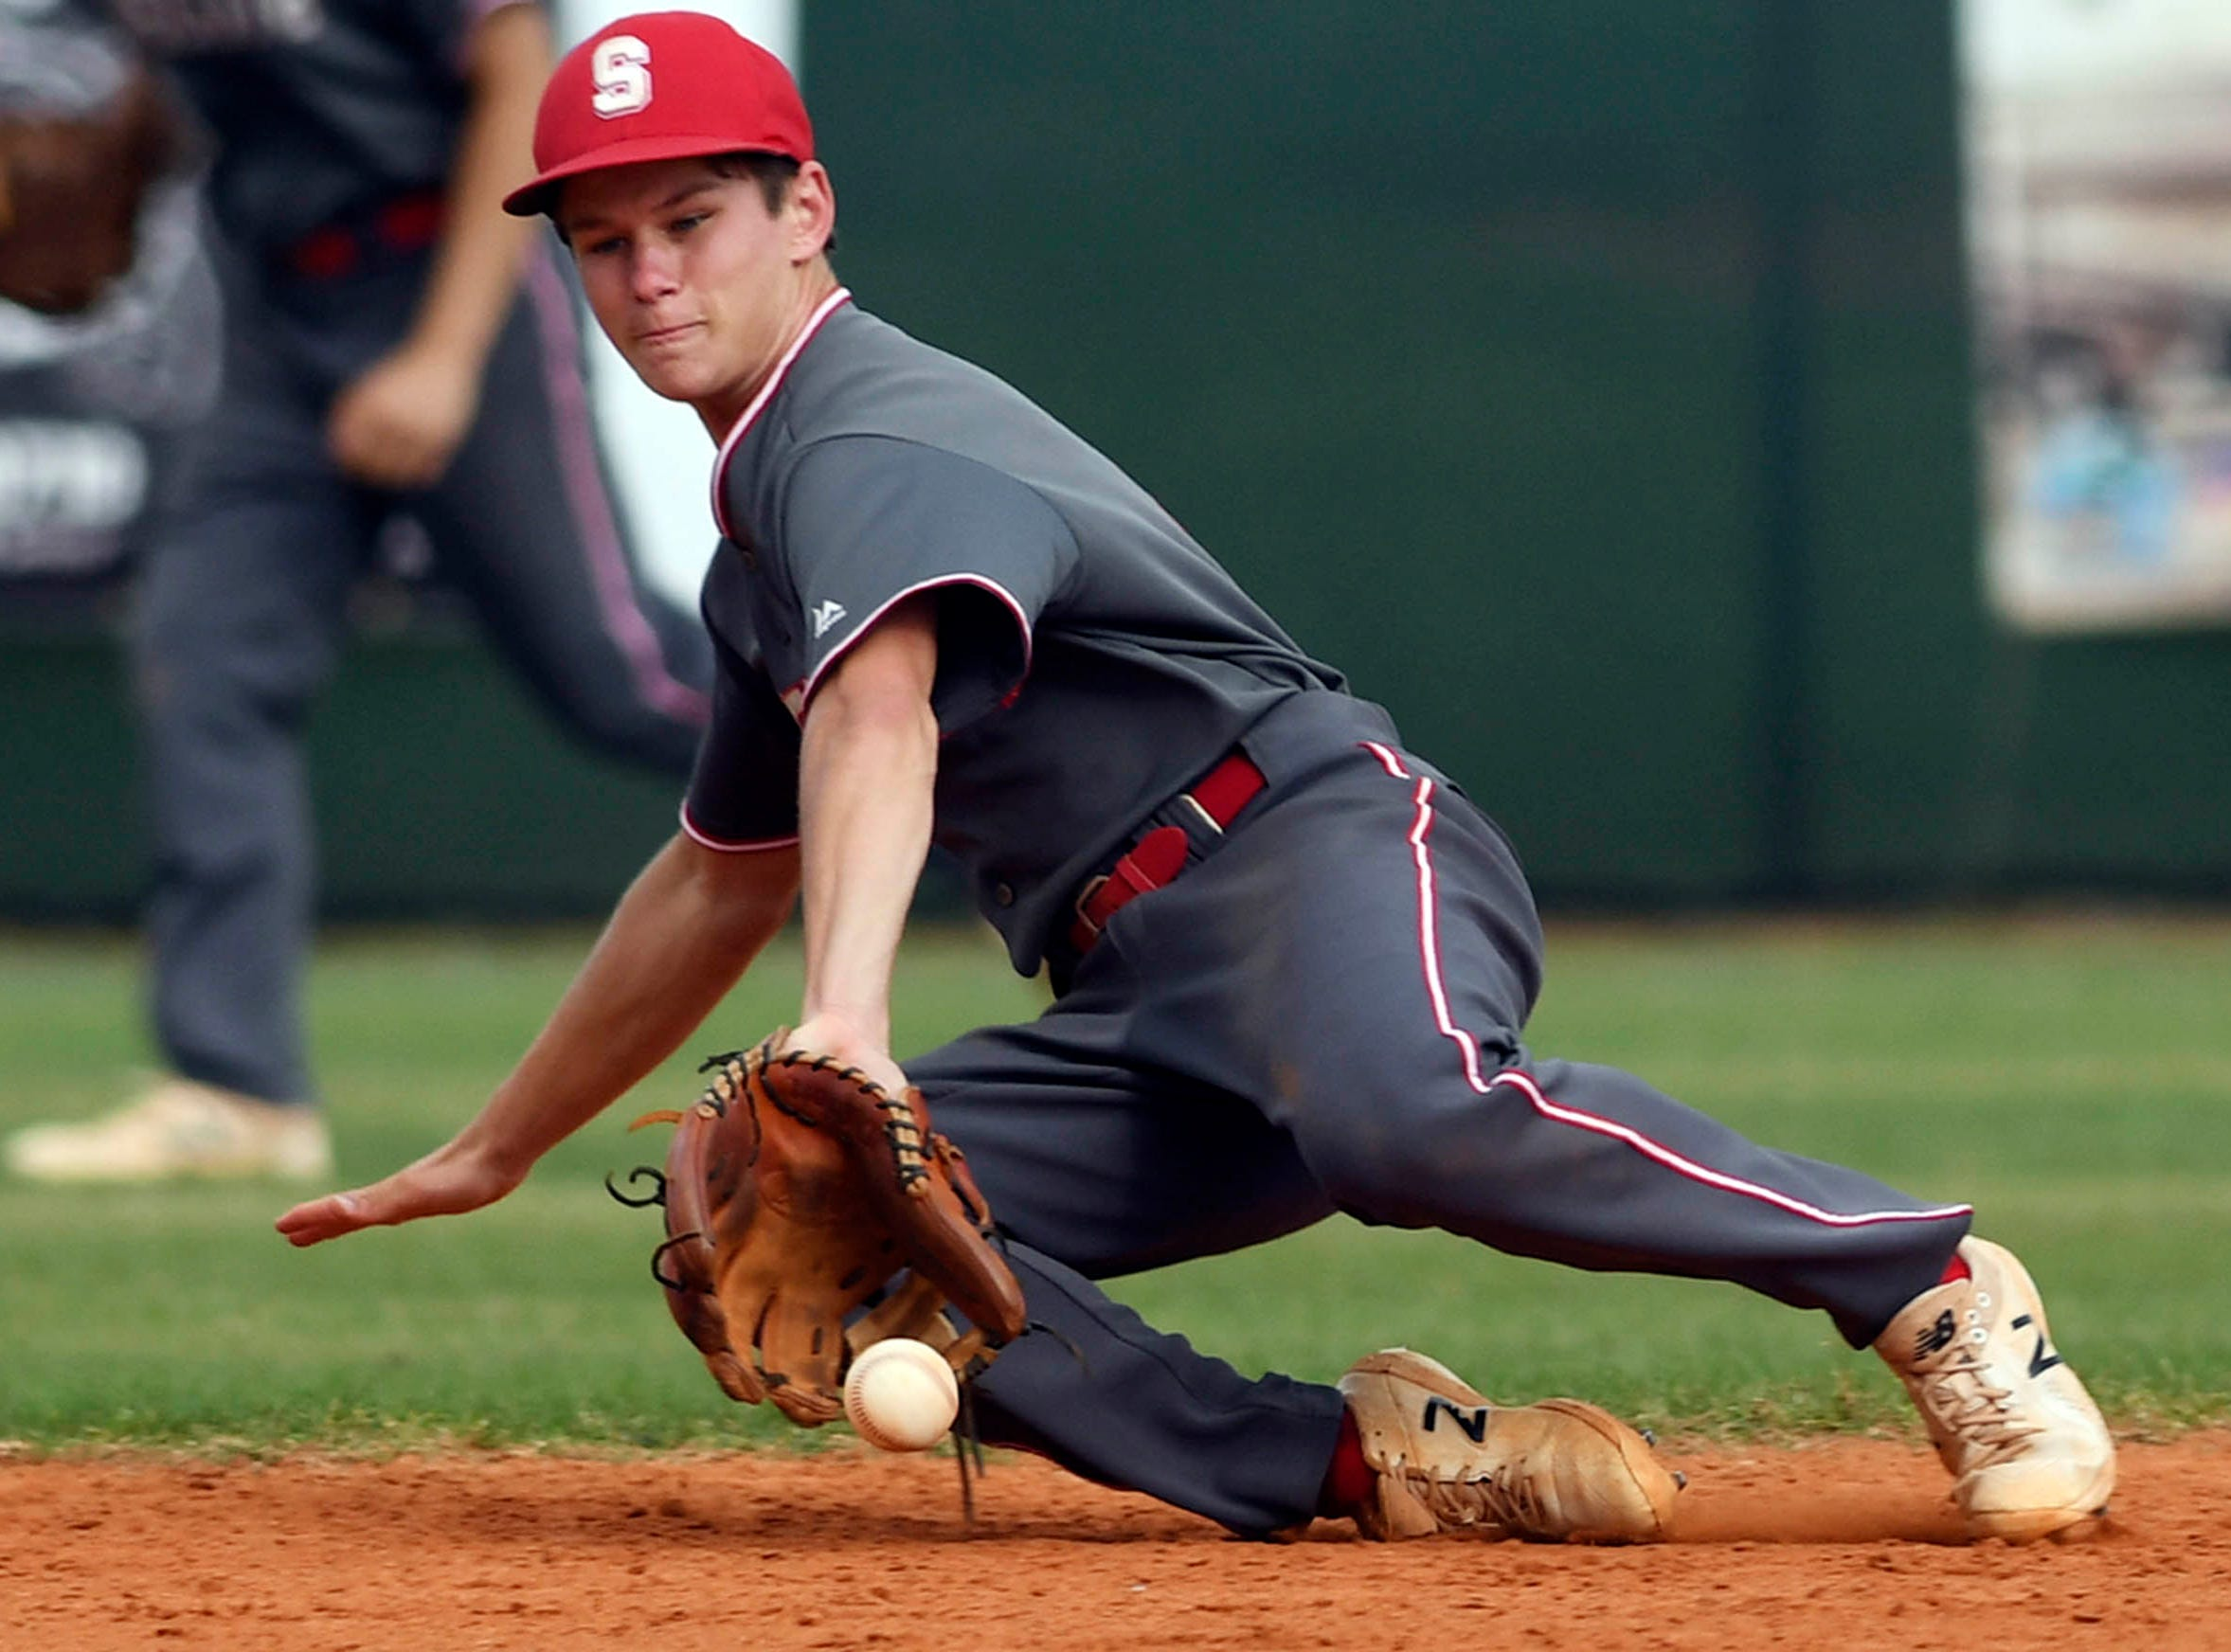 Nathan Westfield of Satellite fields a hard hit grounder during Tuesday's game against MCC.